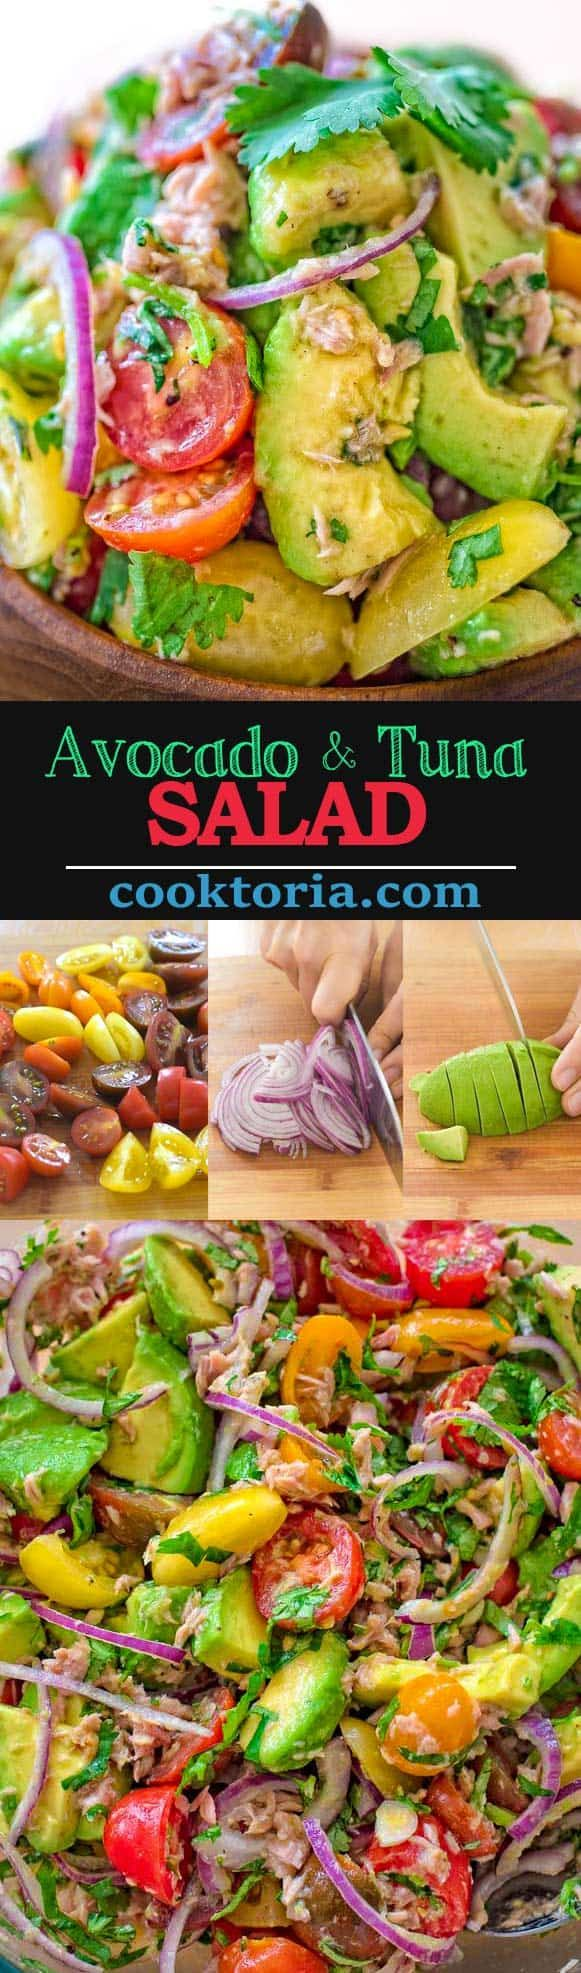 Very simple, flavorful, and tasty, this Avocado Tuna Salad requires just a few ingredients and 10 m